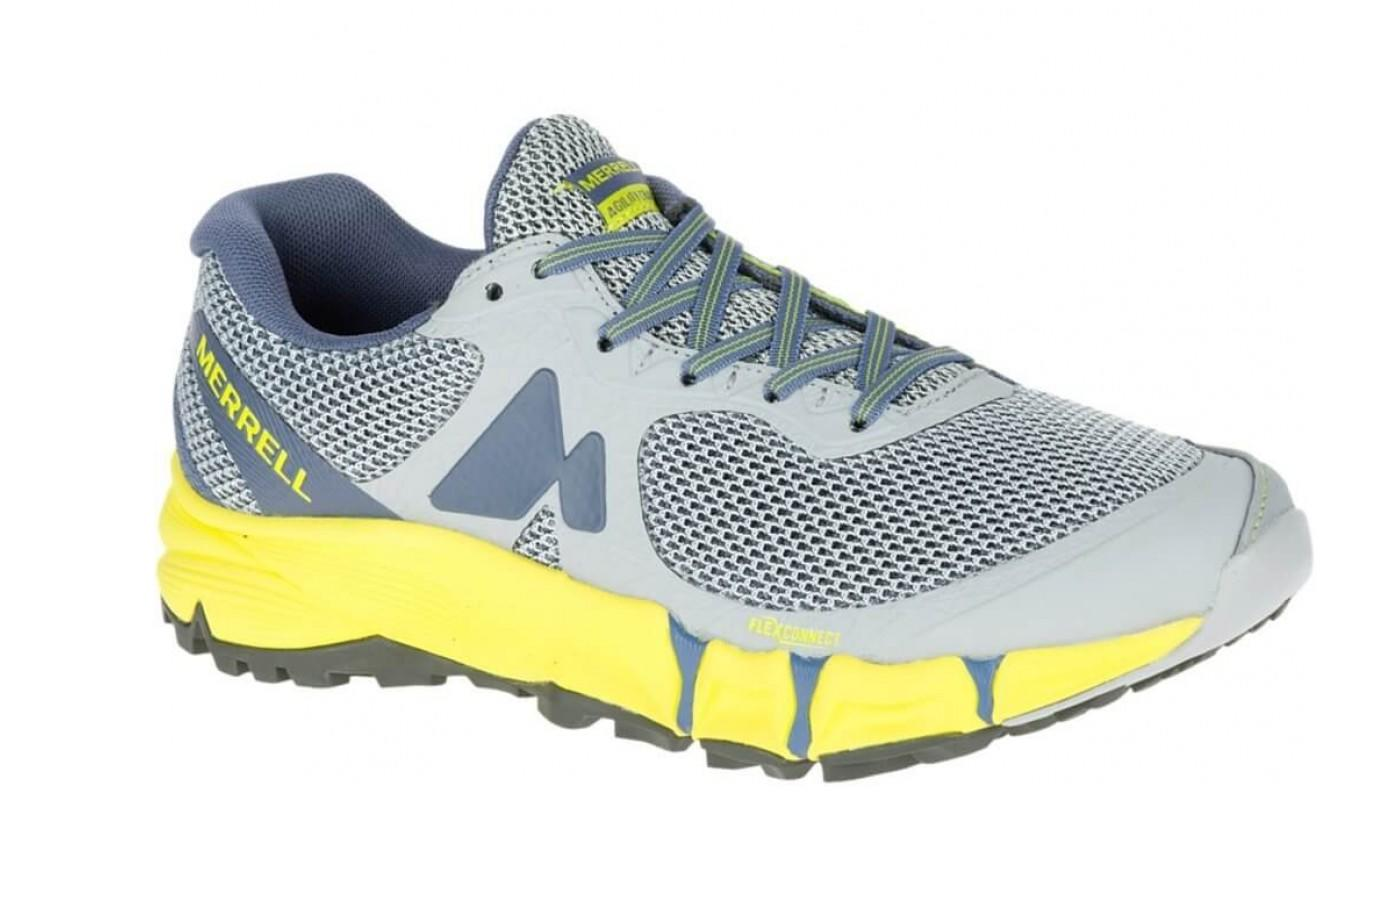 Yellow accented version of the women's Merrell Agility Charge Flex